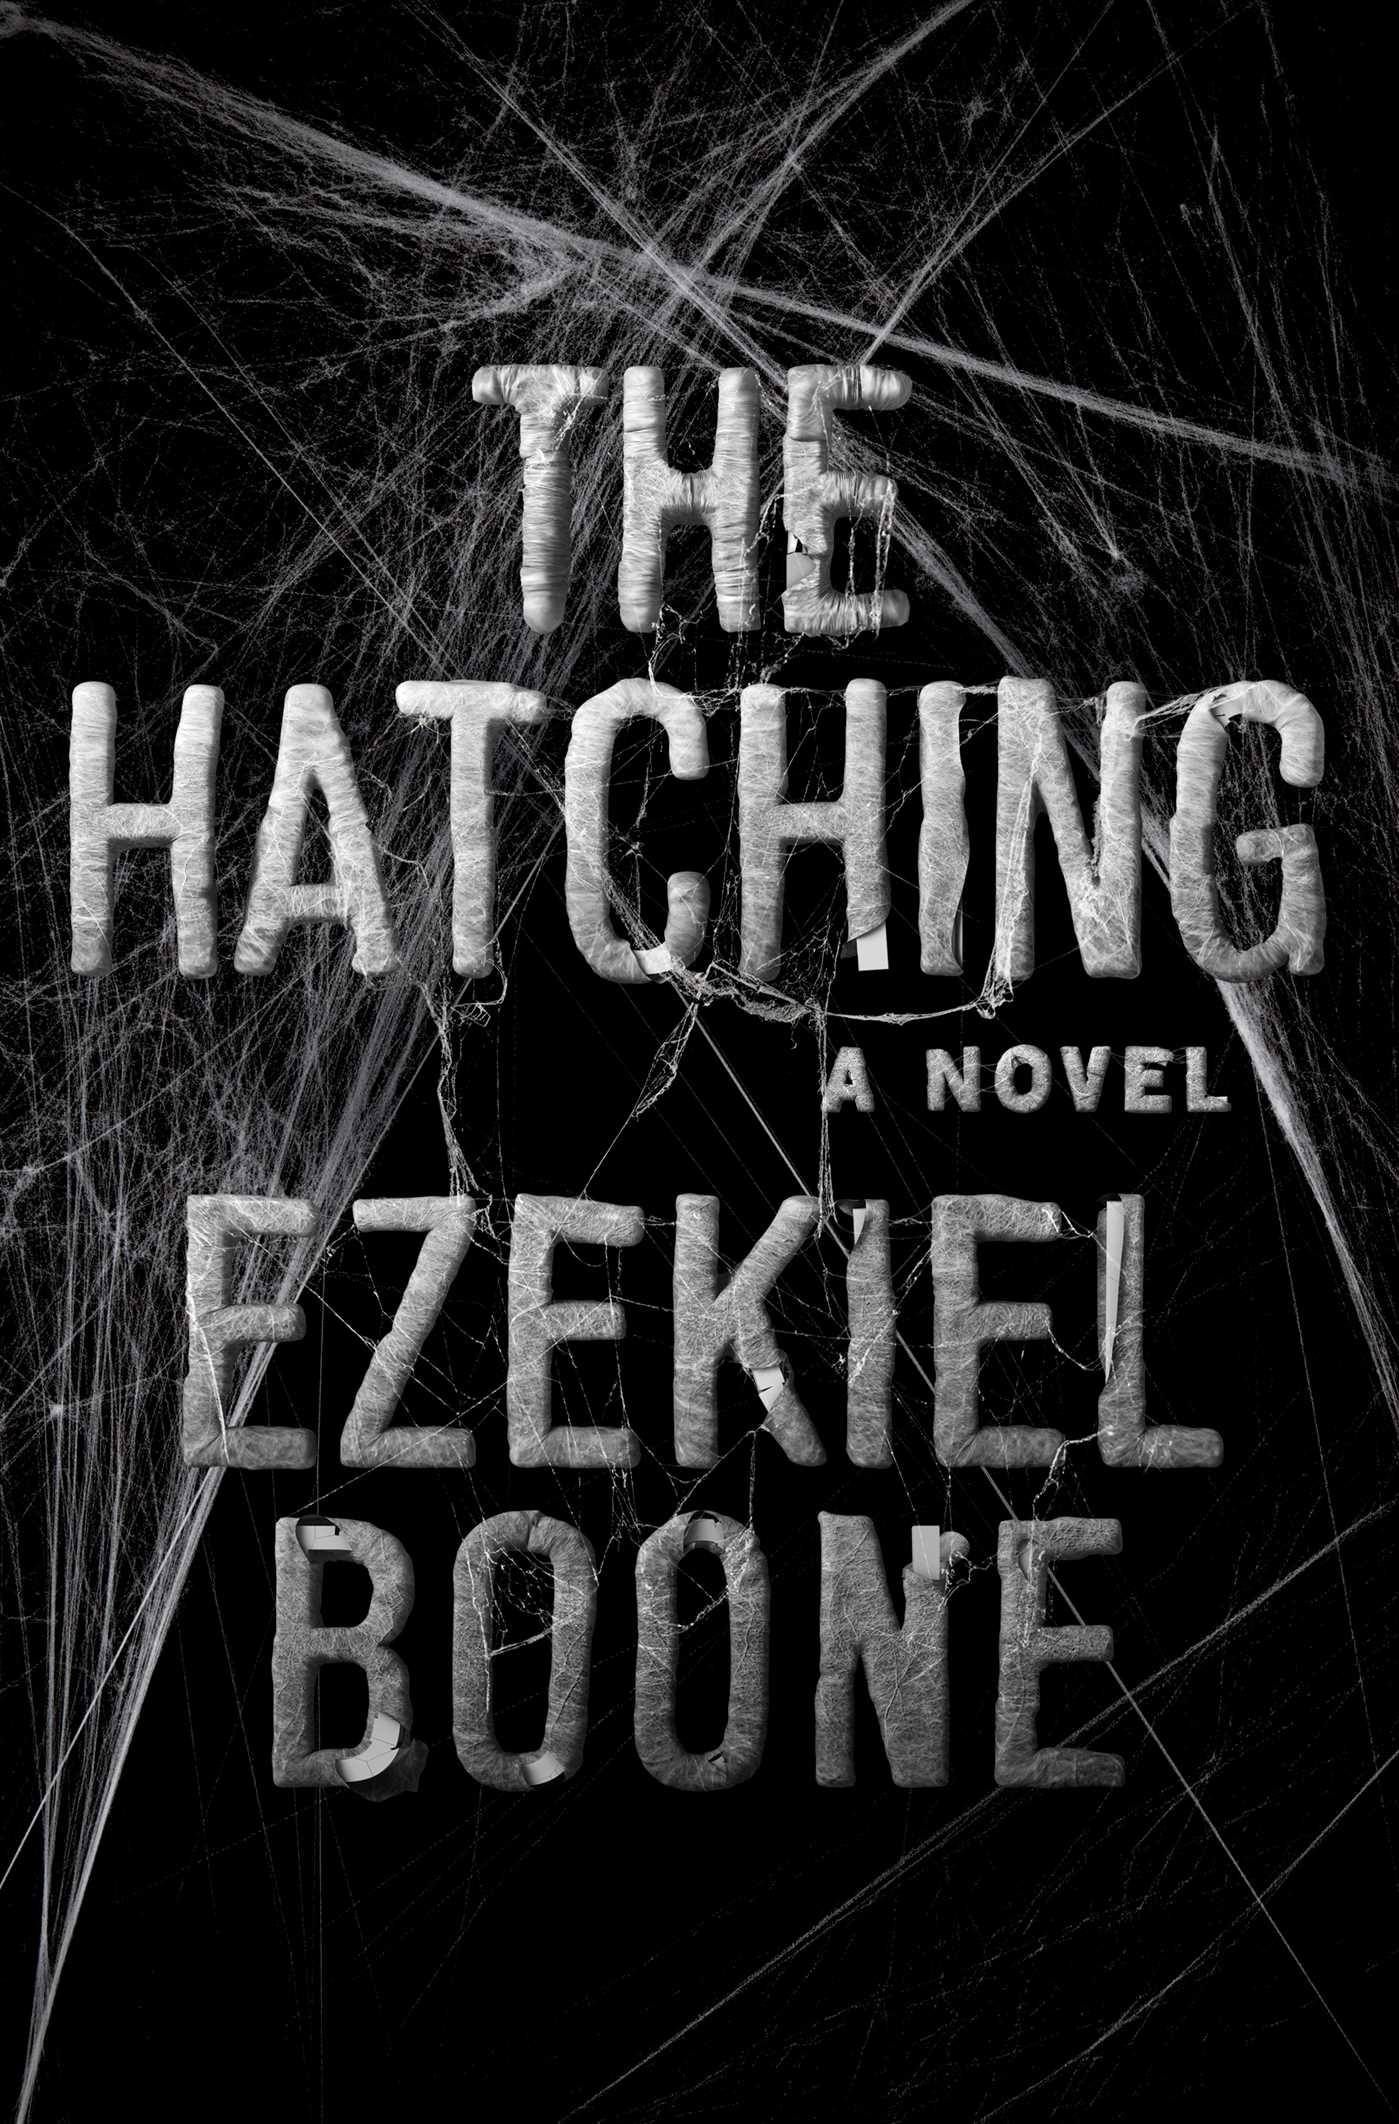 Image result for the hatching ezekiel boone